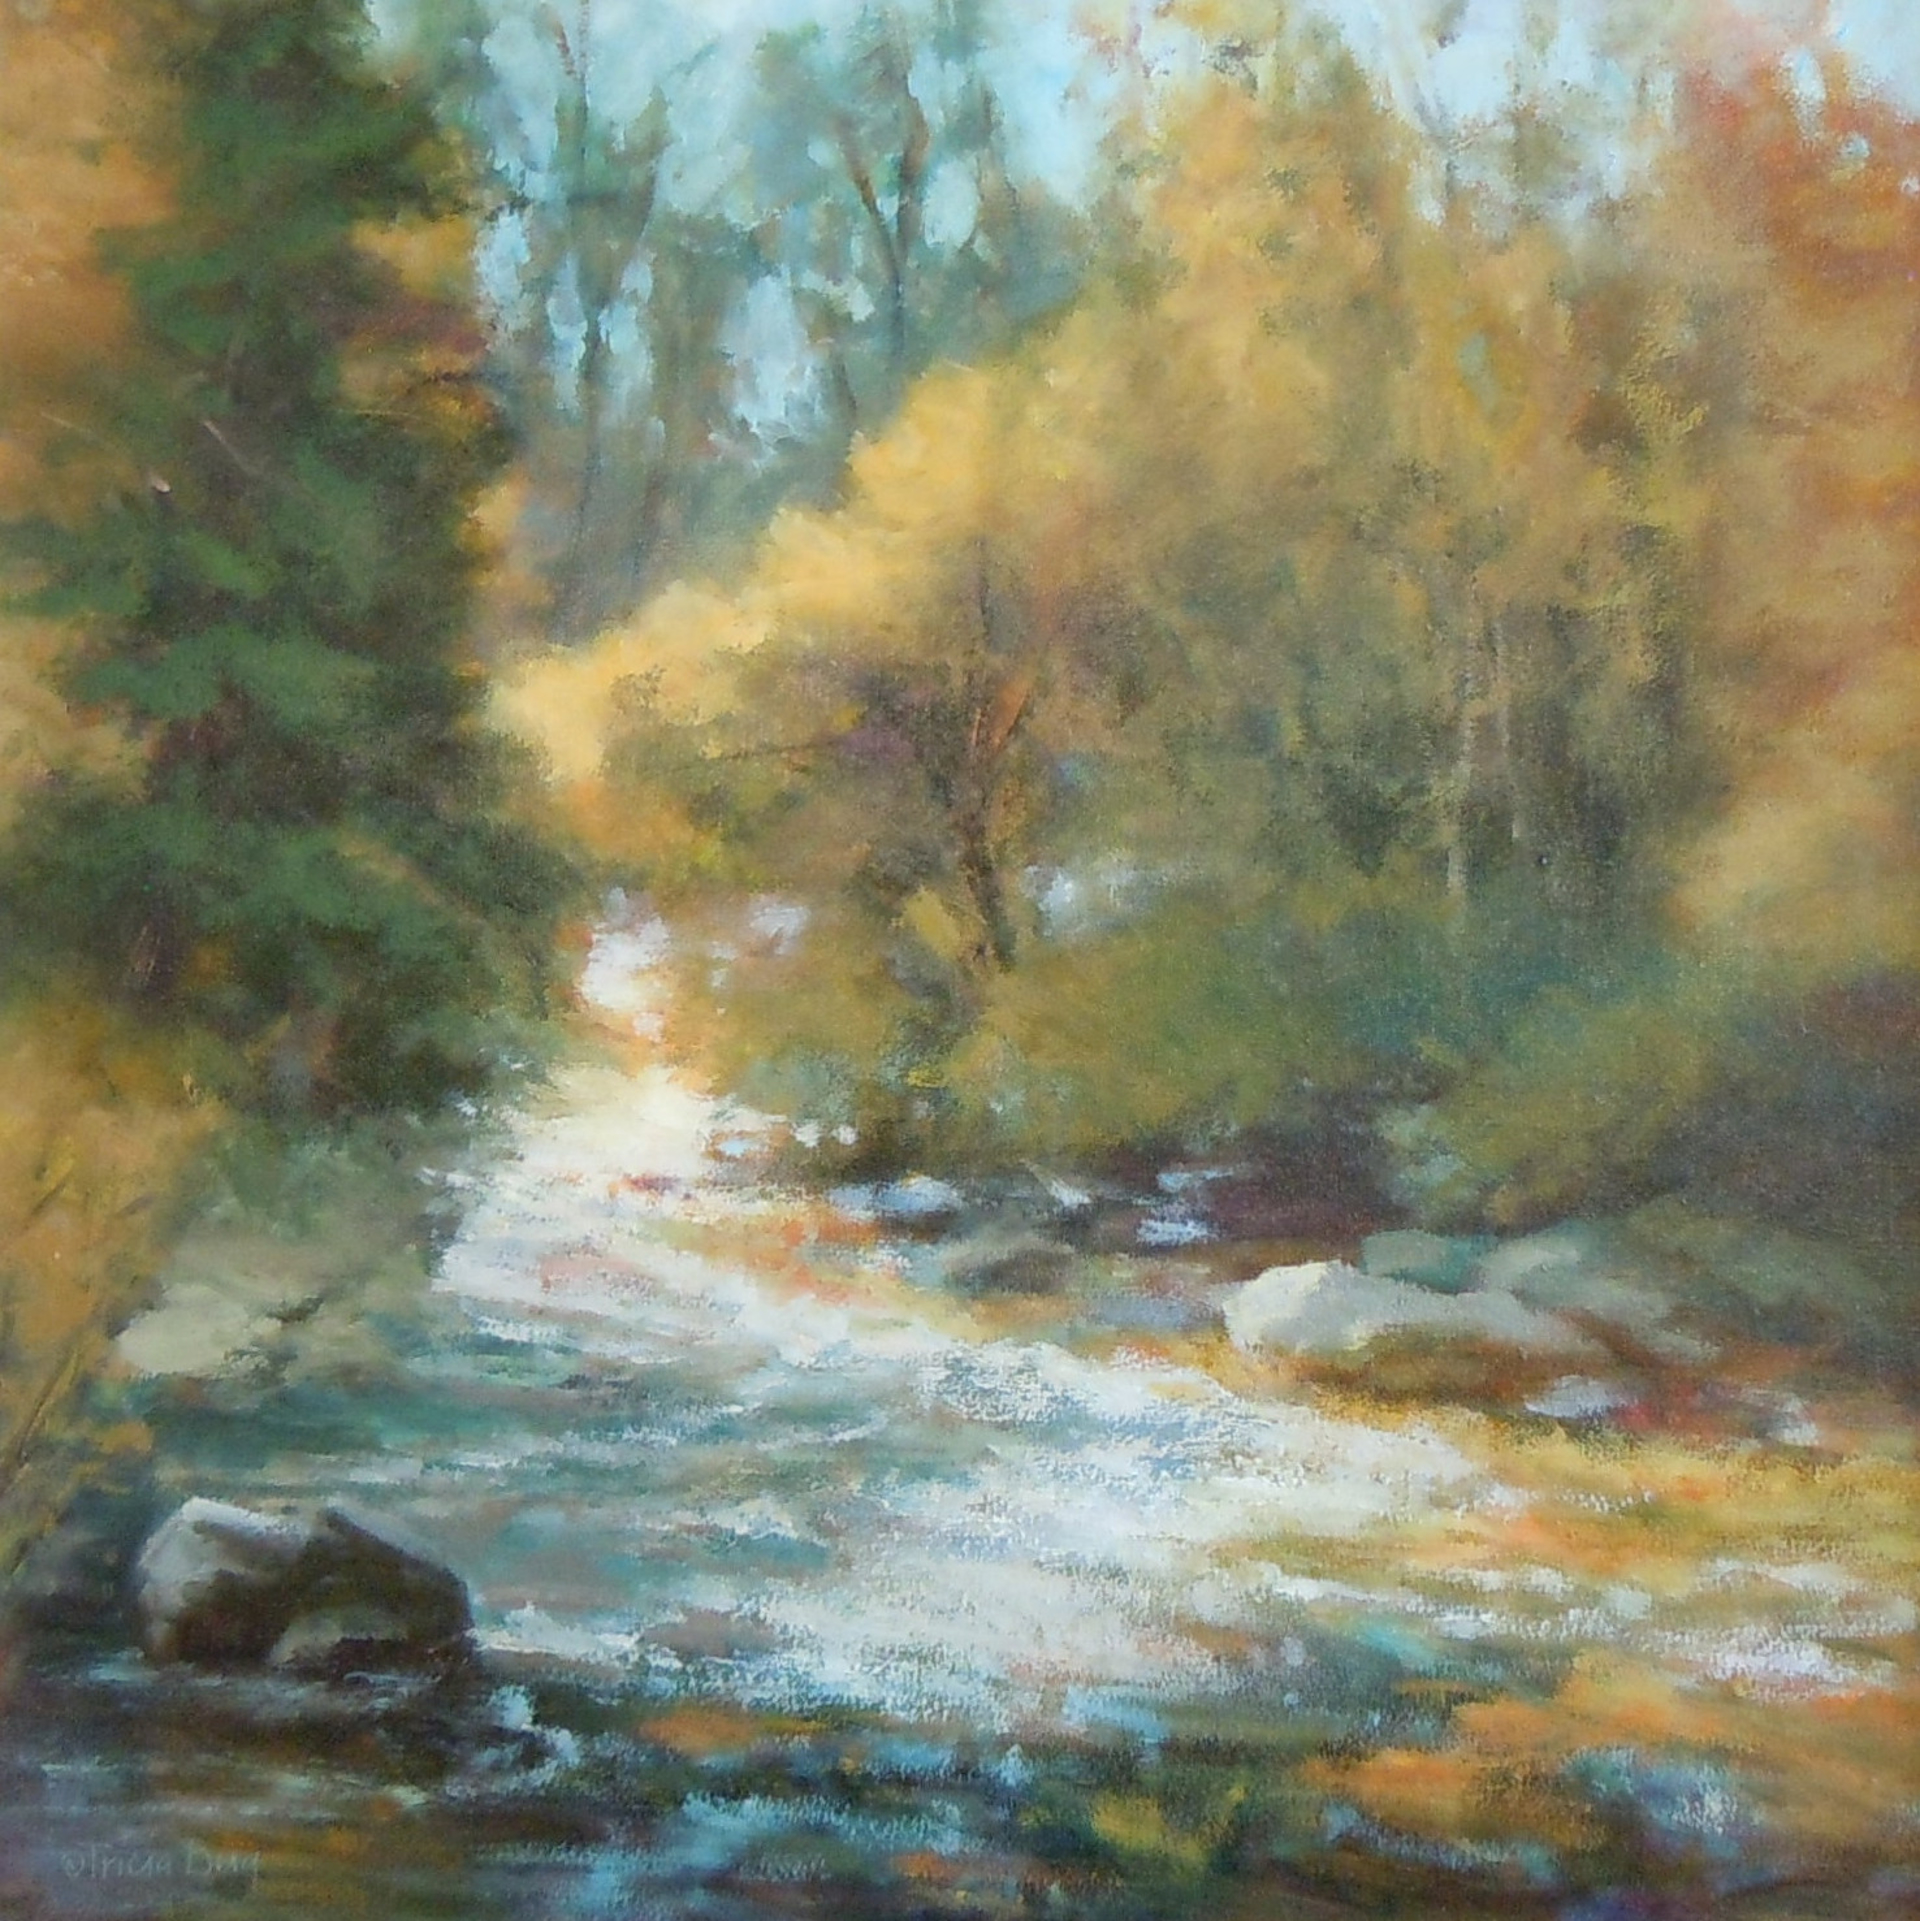 Autumn Creek by Tricia Berg